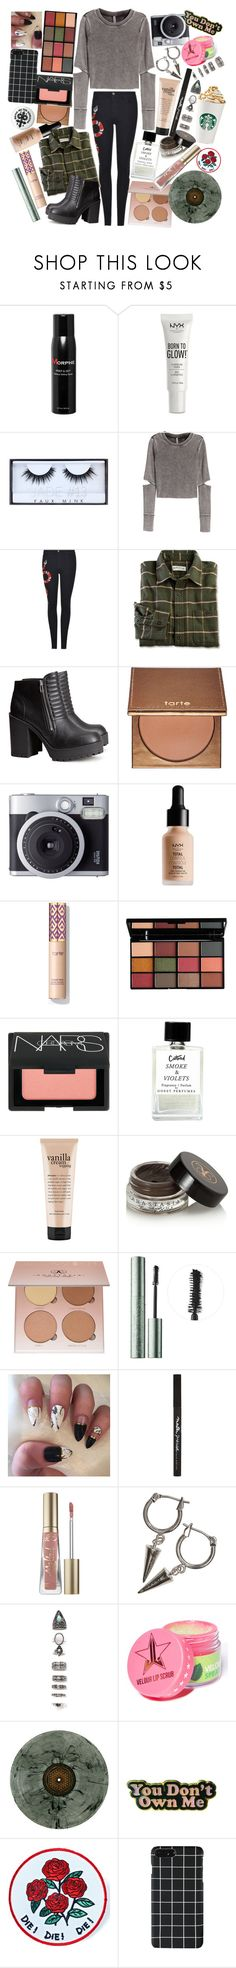 """You say that you're no good for me, cuz I'm always tugging at your sleeve. And I swear I hate you when you leave, but I like it anyway"" by thelyricsmatter ❤ liked on Polyvore featuring Morphe, NYX, Huda Beauty, H&M, Gucci, tarte, Fujifilm, NARS Cosmetics, philosophy and Anastasia Beverly Hills"